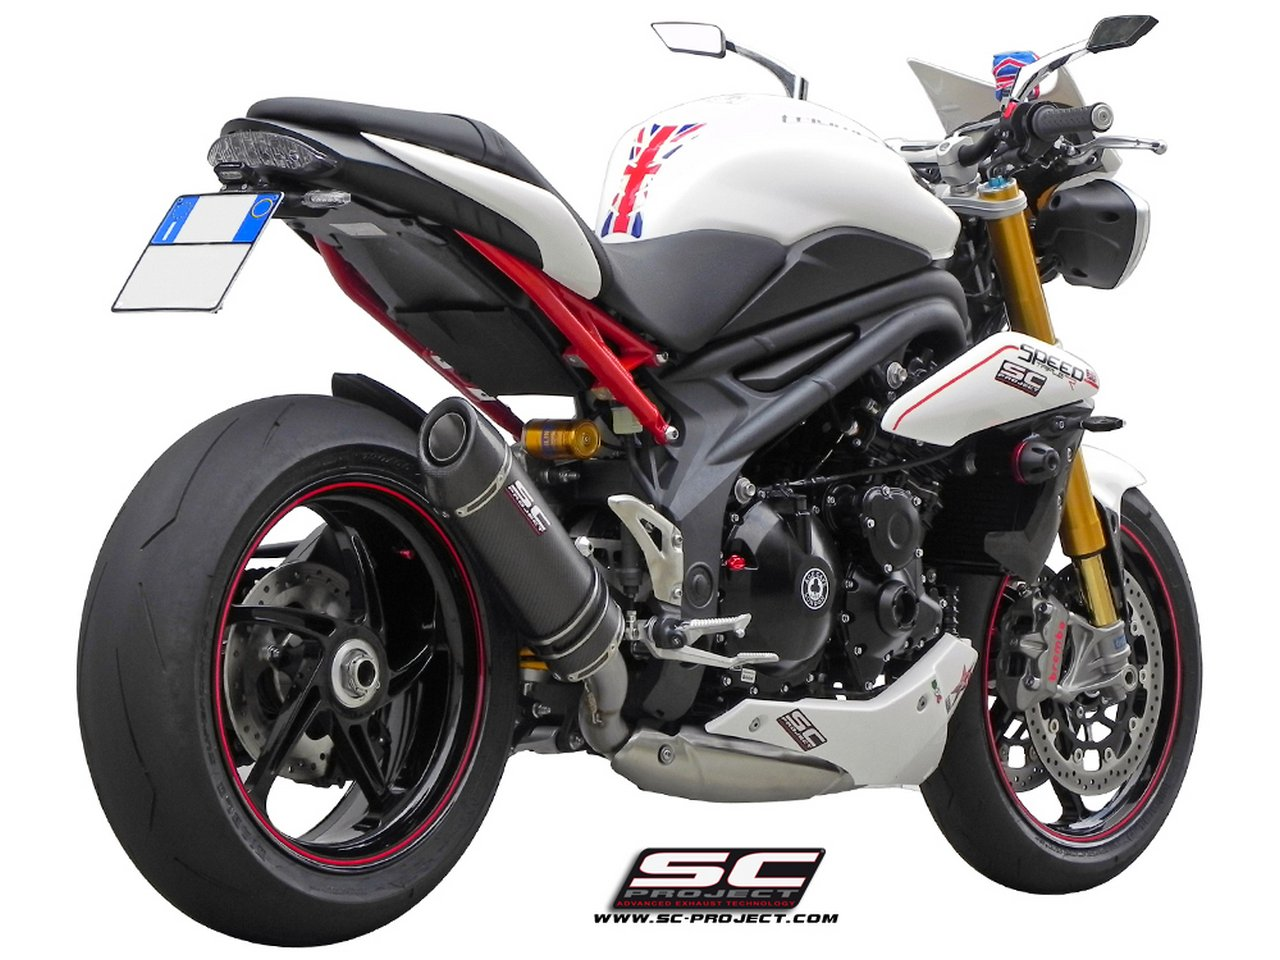 2012 Triumph Speed Triple Image 7 Wiring Diagram